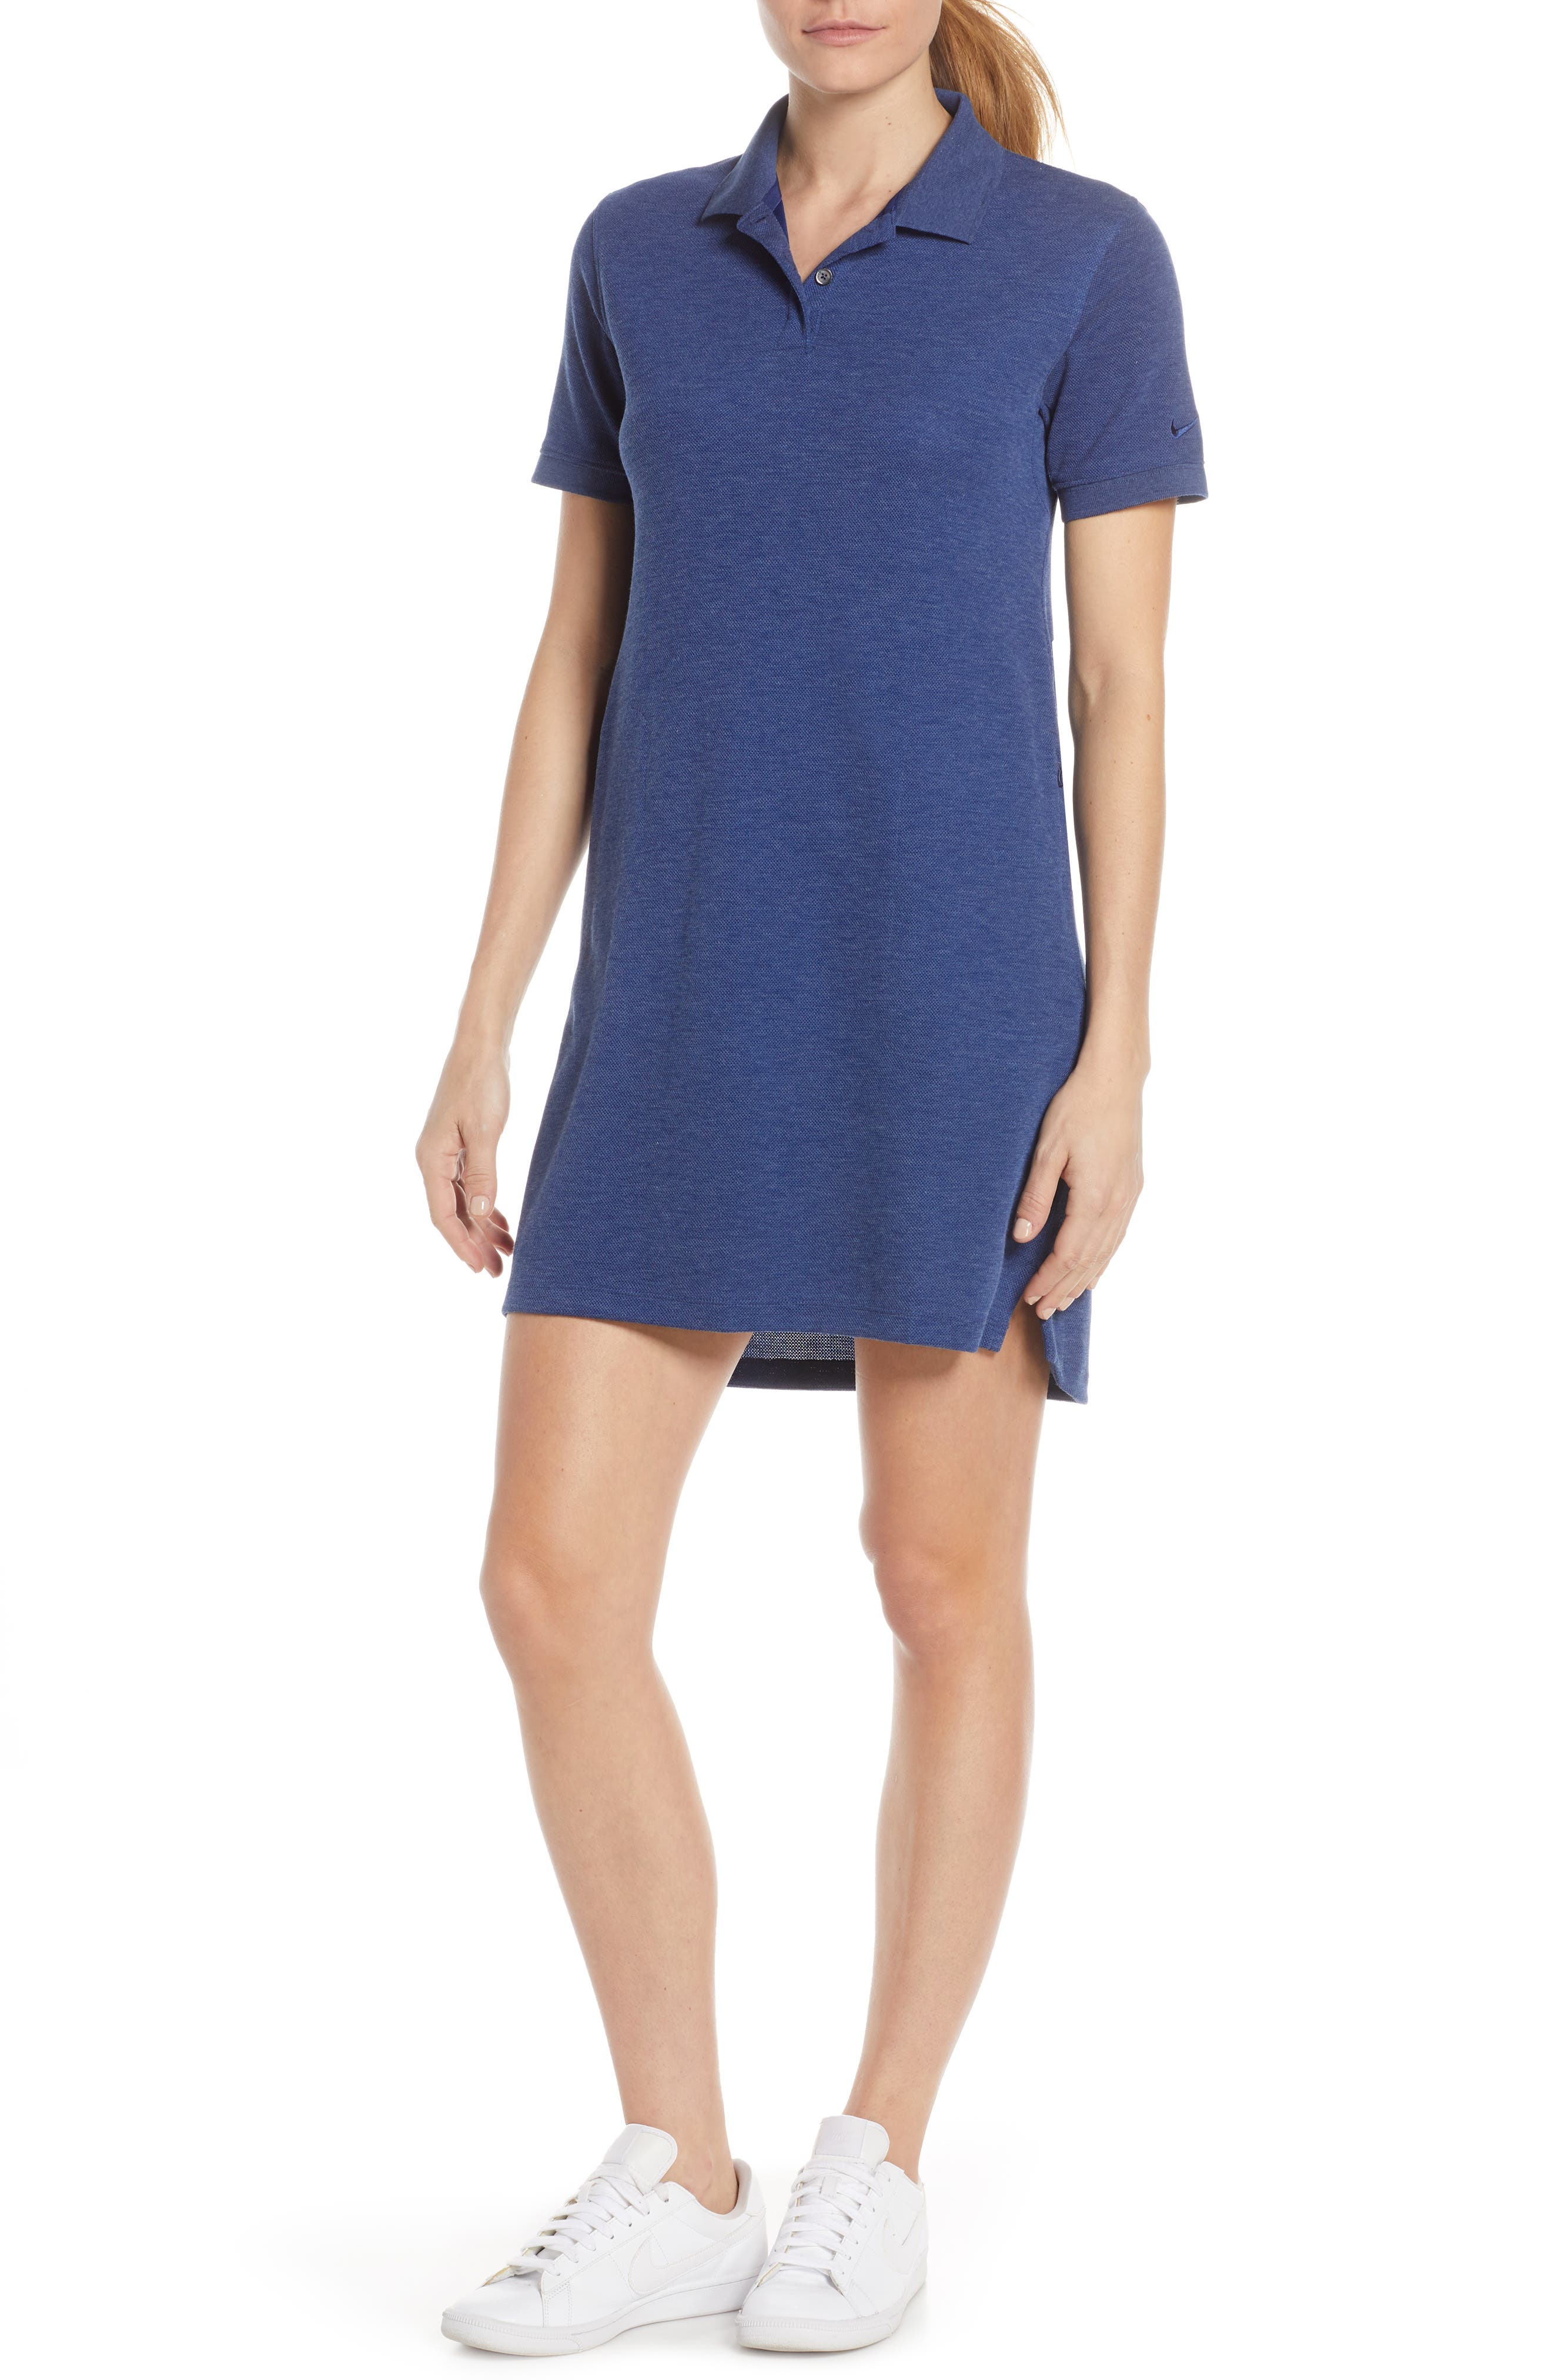 Nike Dri-Fit Polo Dress, Blue